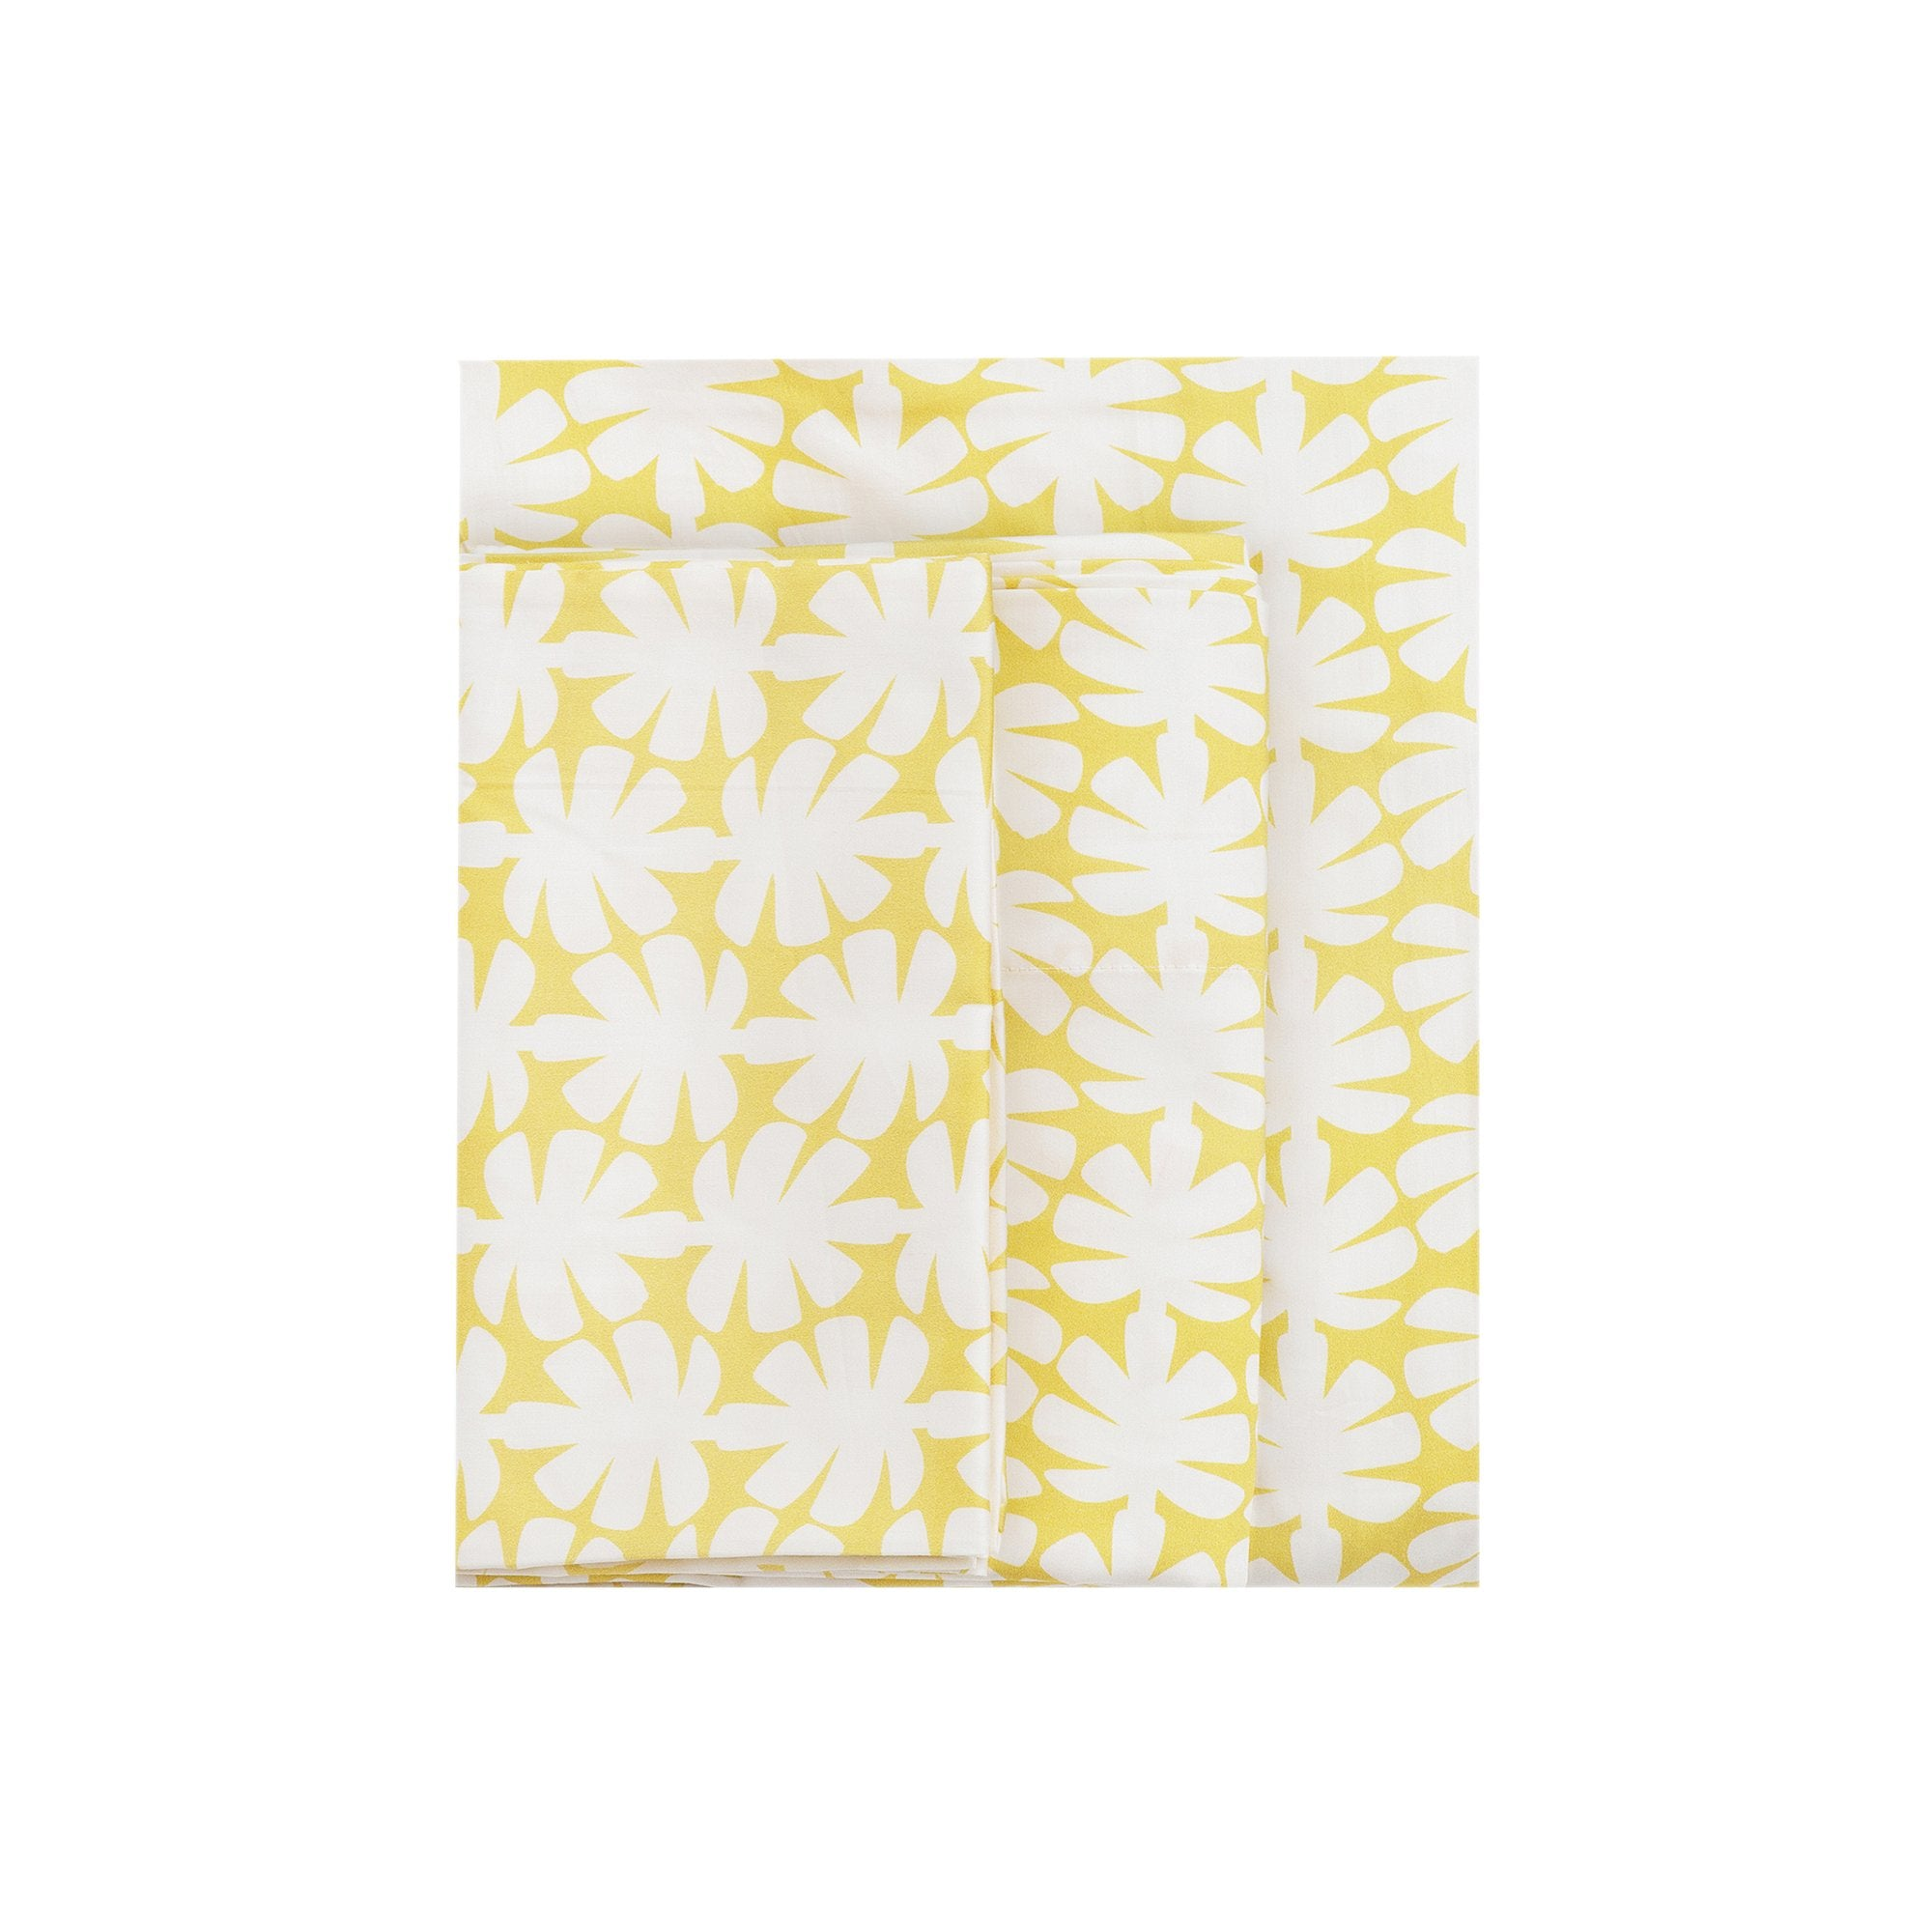 Kikau's Lemon Yellow Coconut Palm kids sheet set on white background